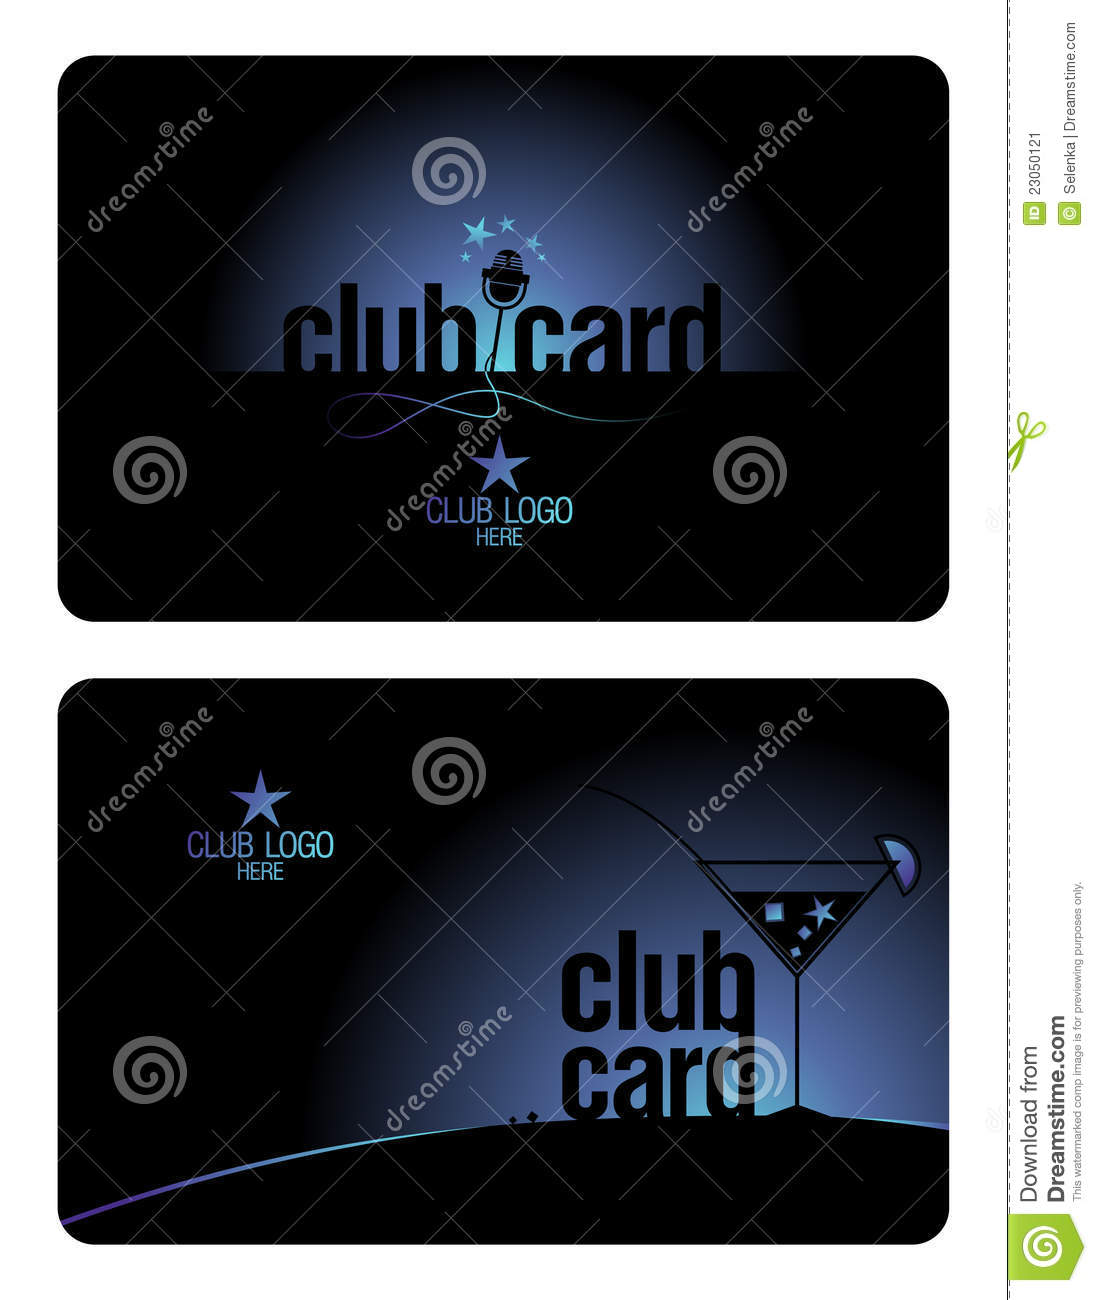 Club Card Design Template Image Image 23050121 – Club Card Design